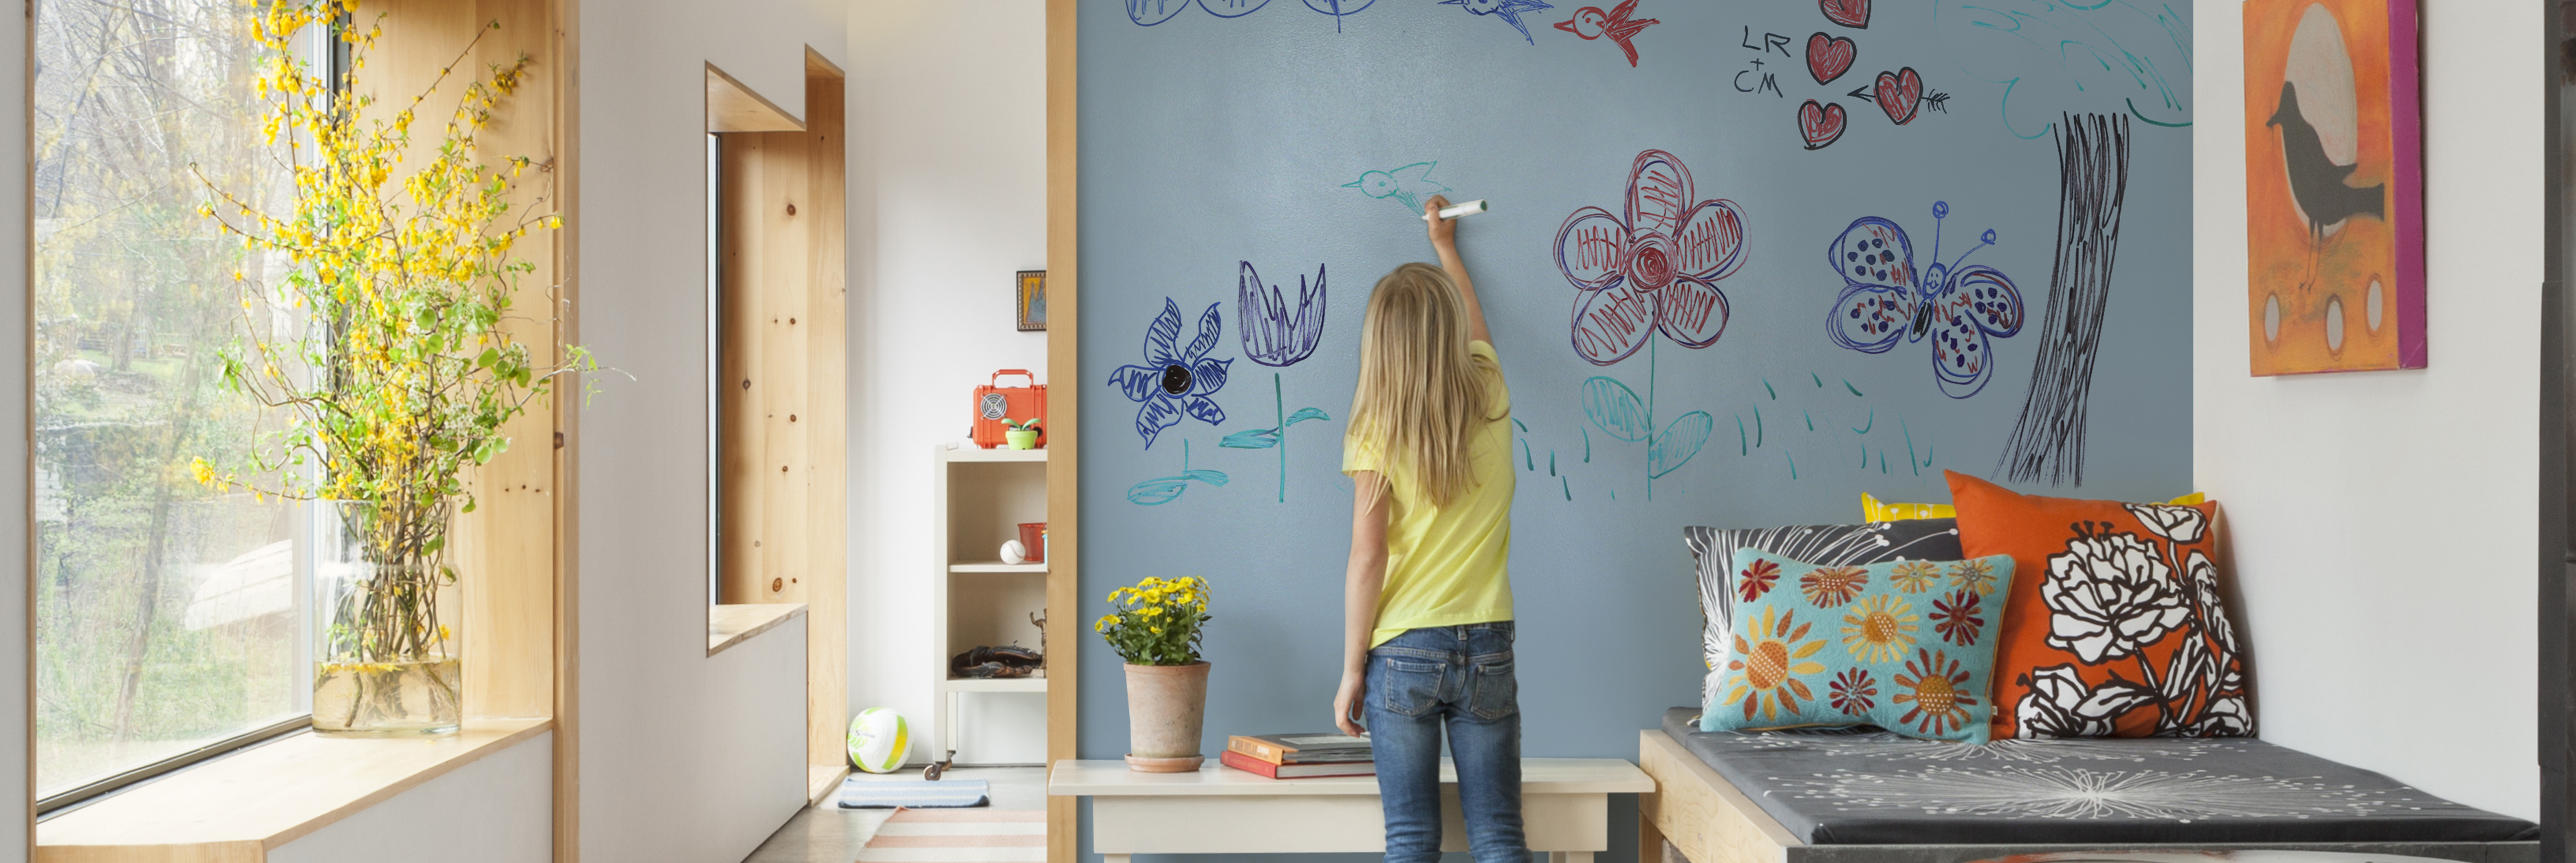 Female child drawing colorful, fun sketches on her dry-erase wall in office room